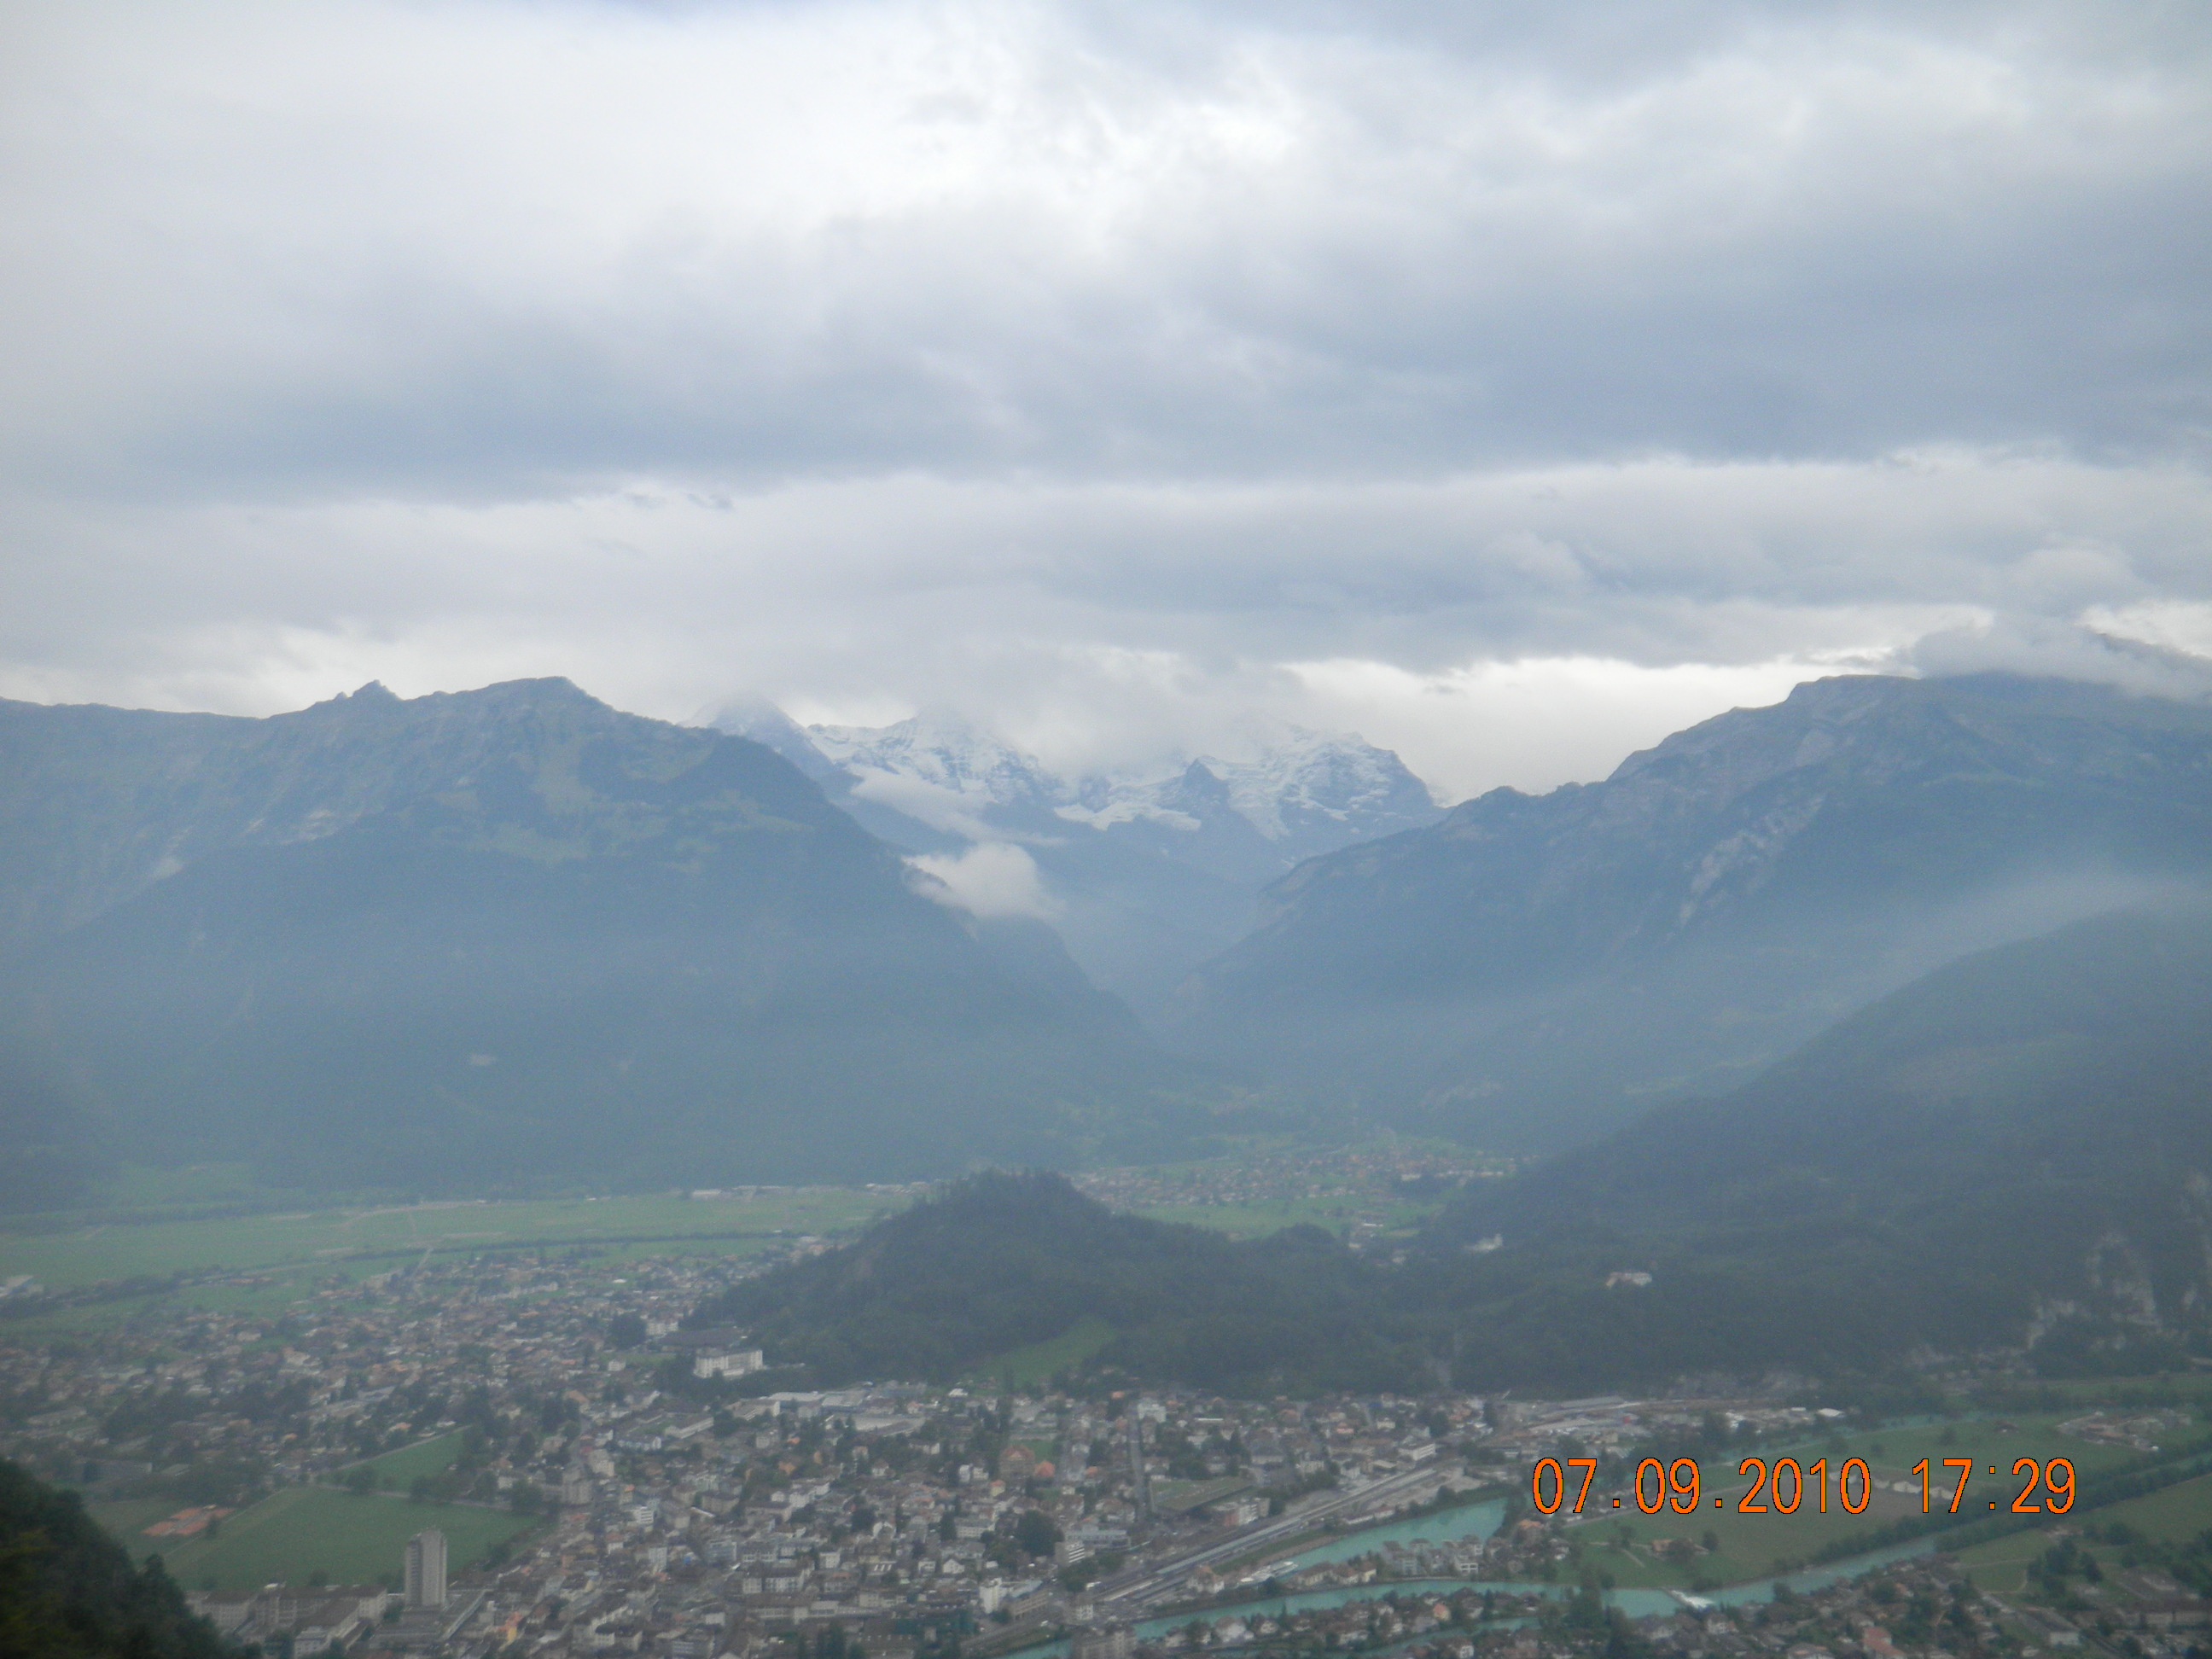 lake zurich hindu personals Singles travel to switzerland for switzerland scenic adventure singles vacation trip for singles and finance that lies at the north end of lake zurich in.